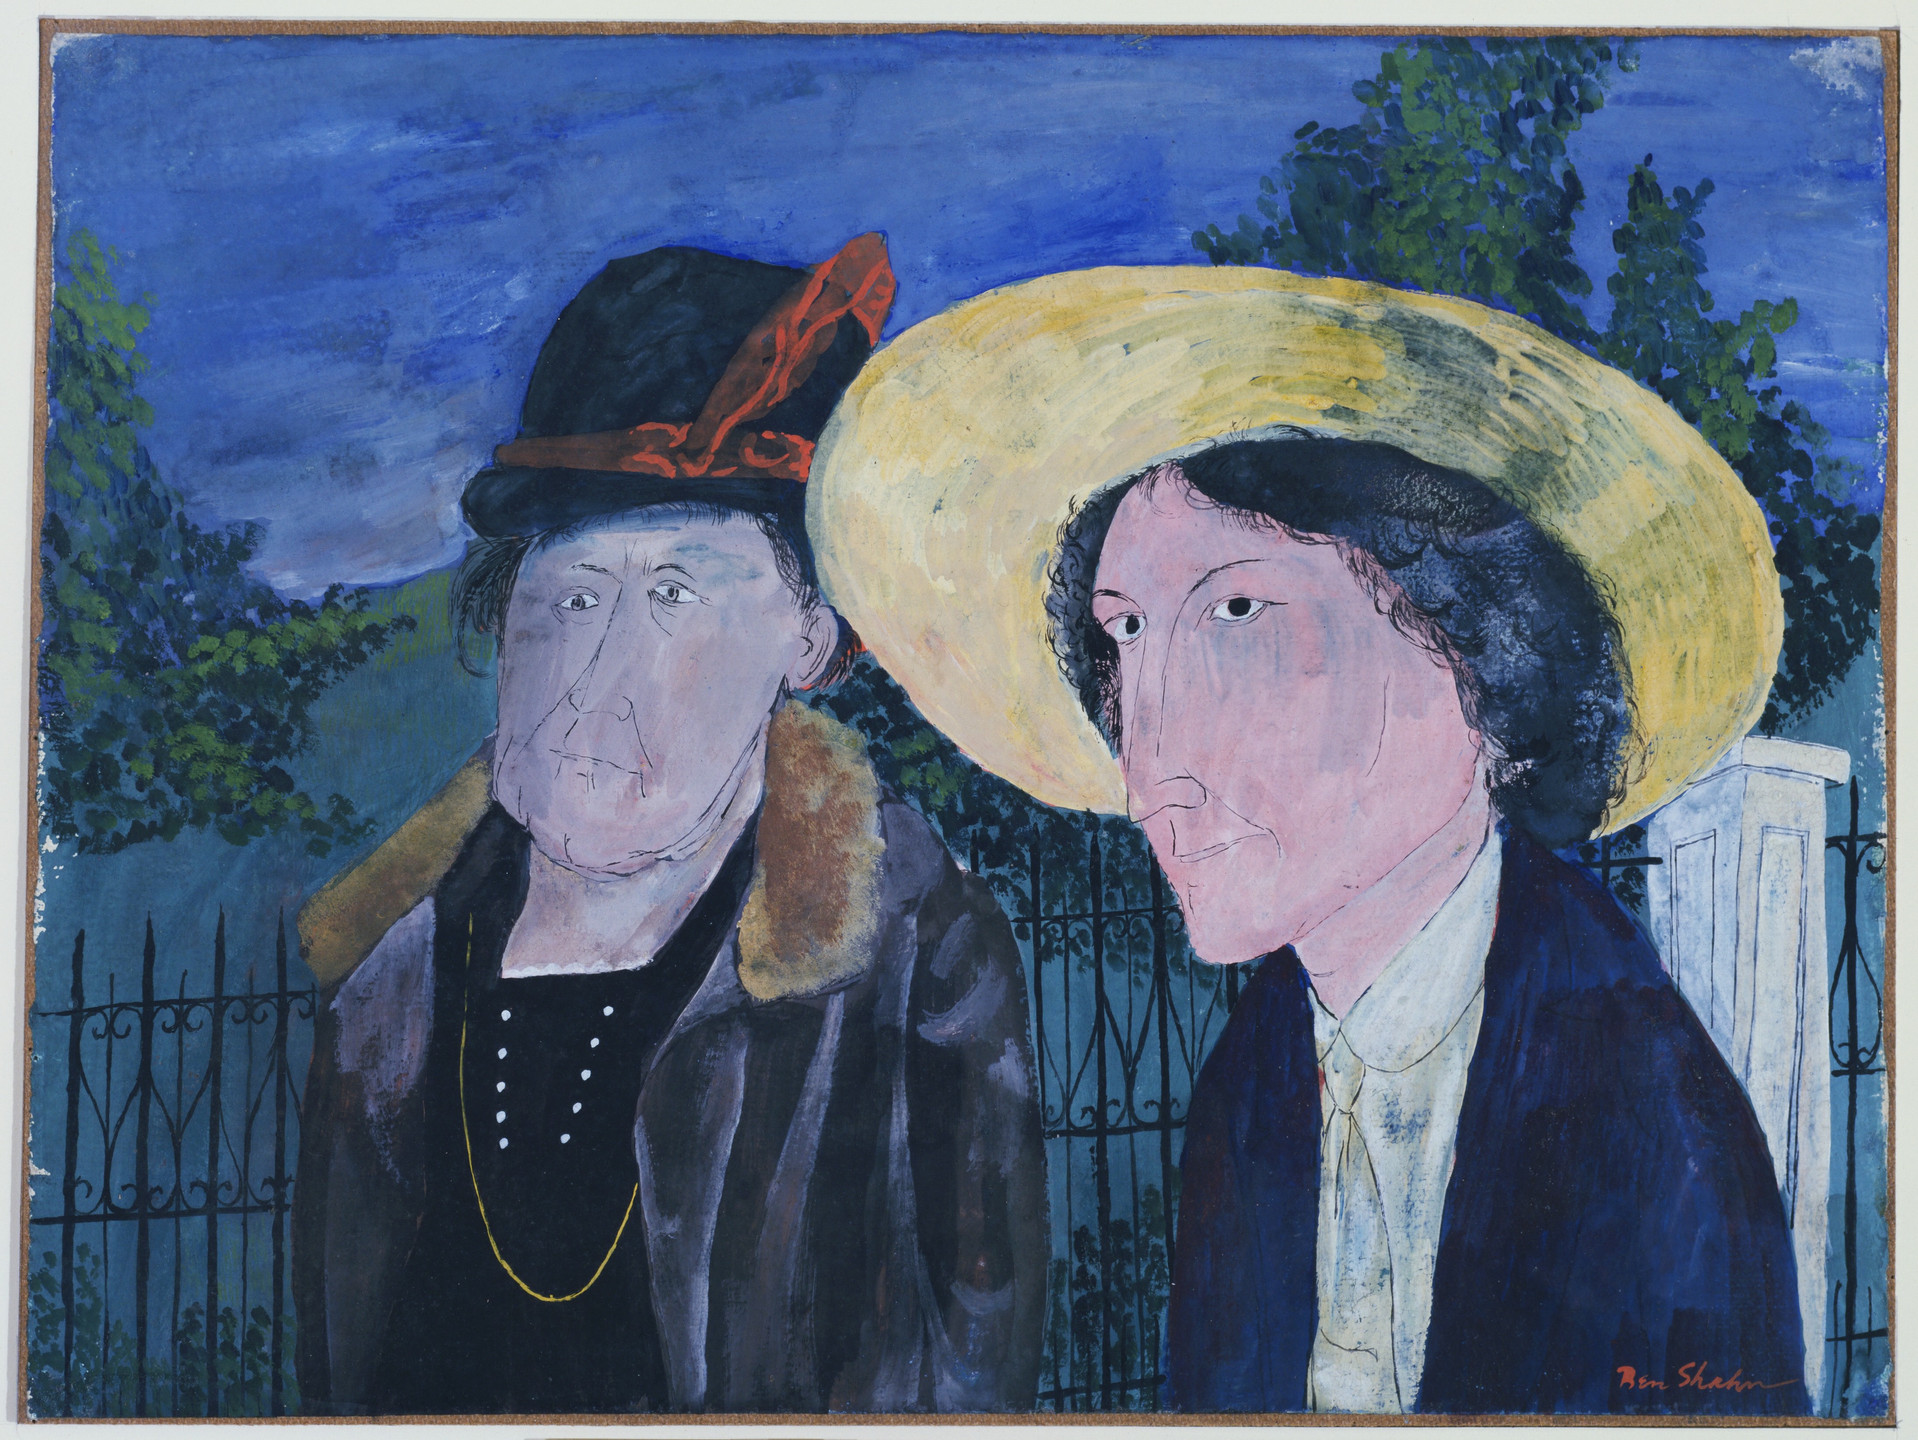 Ben Shahn. Two Witnesses, Mellie Edeau and Sadie Edeau. 1932